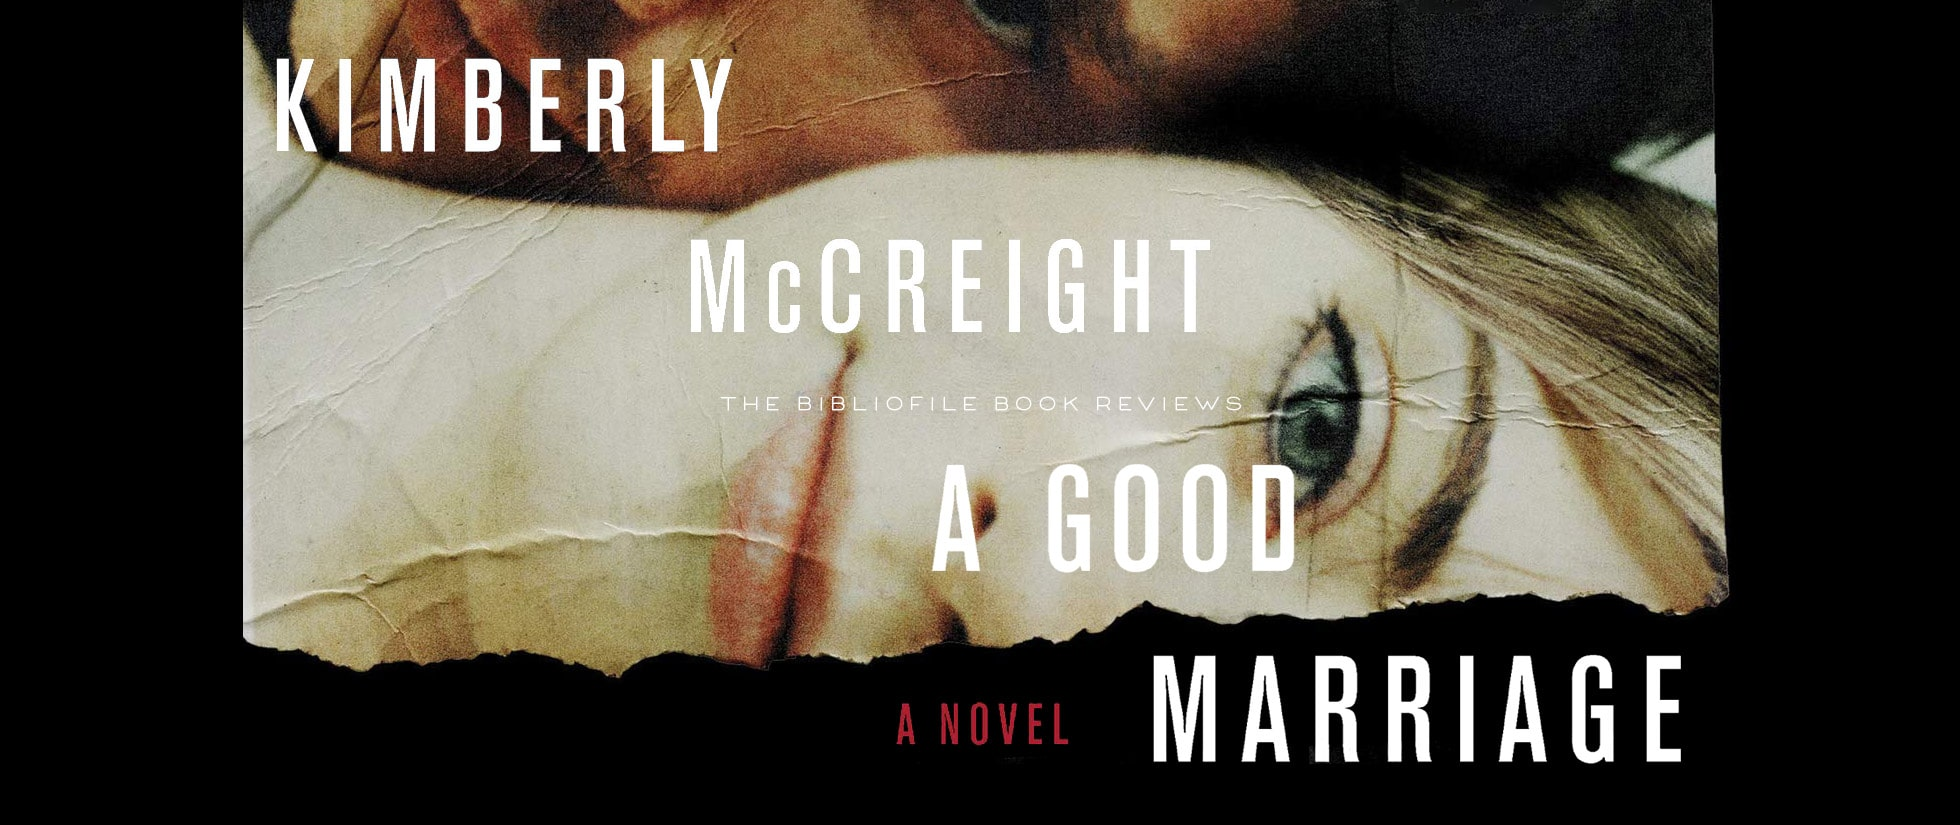 a good marriage by kimberly mccreight book summary plot synopsis spoilers ending explanation review